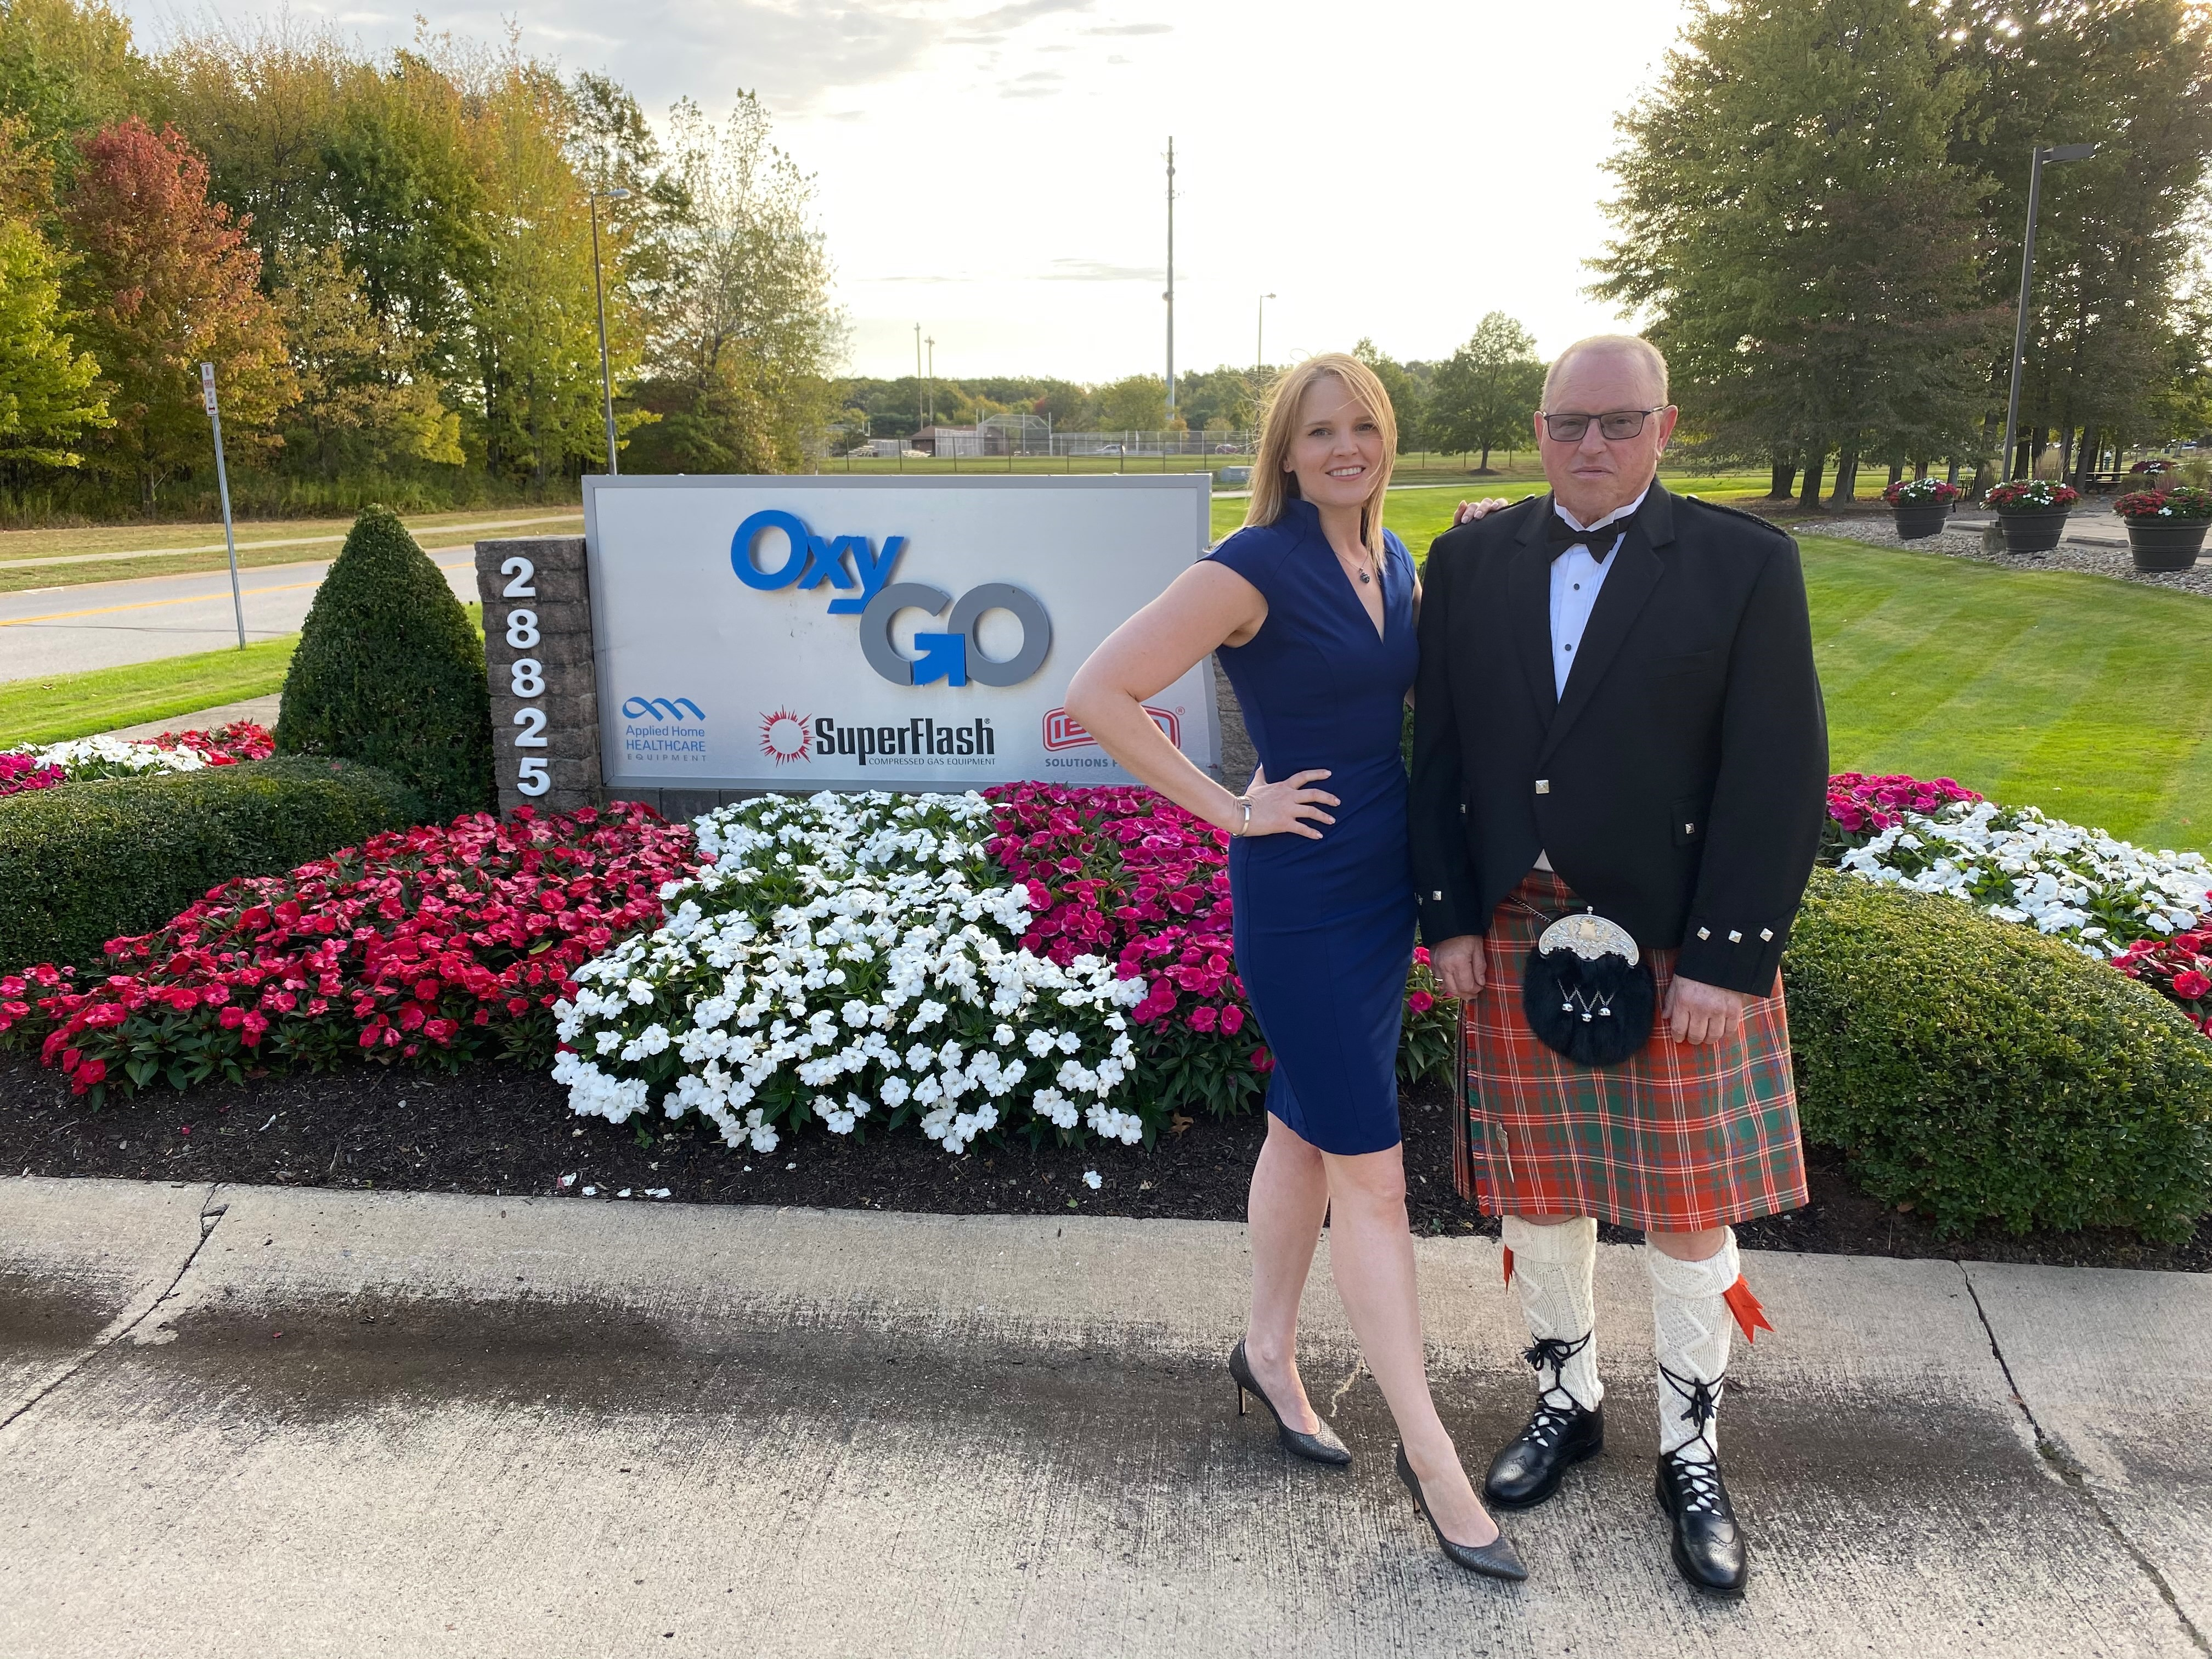 OxyGo CEO Announced as a winner in 2020 Smart 50 Awards